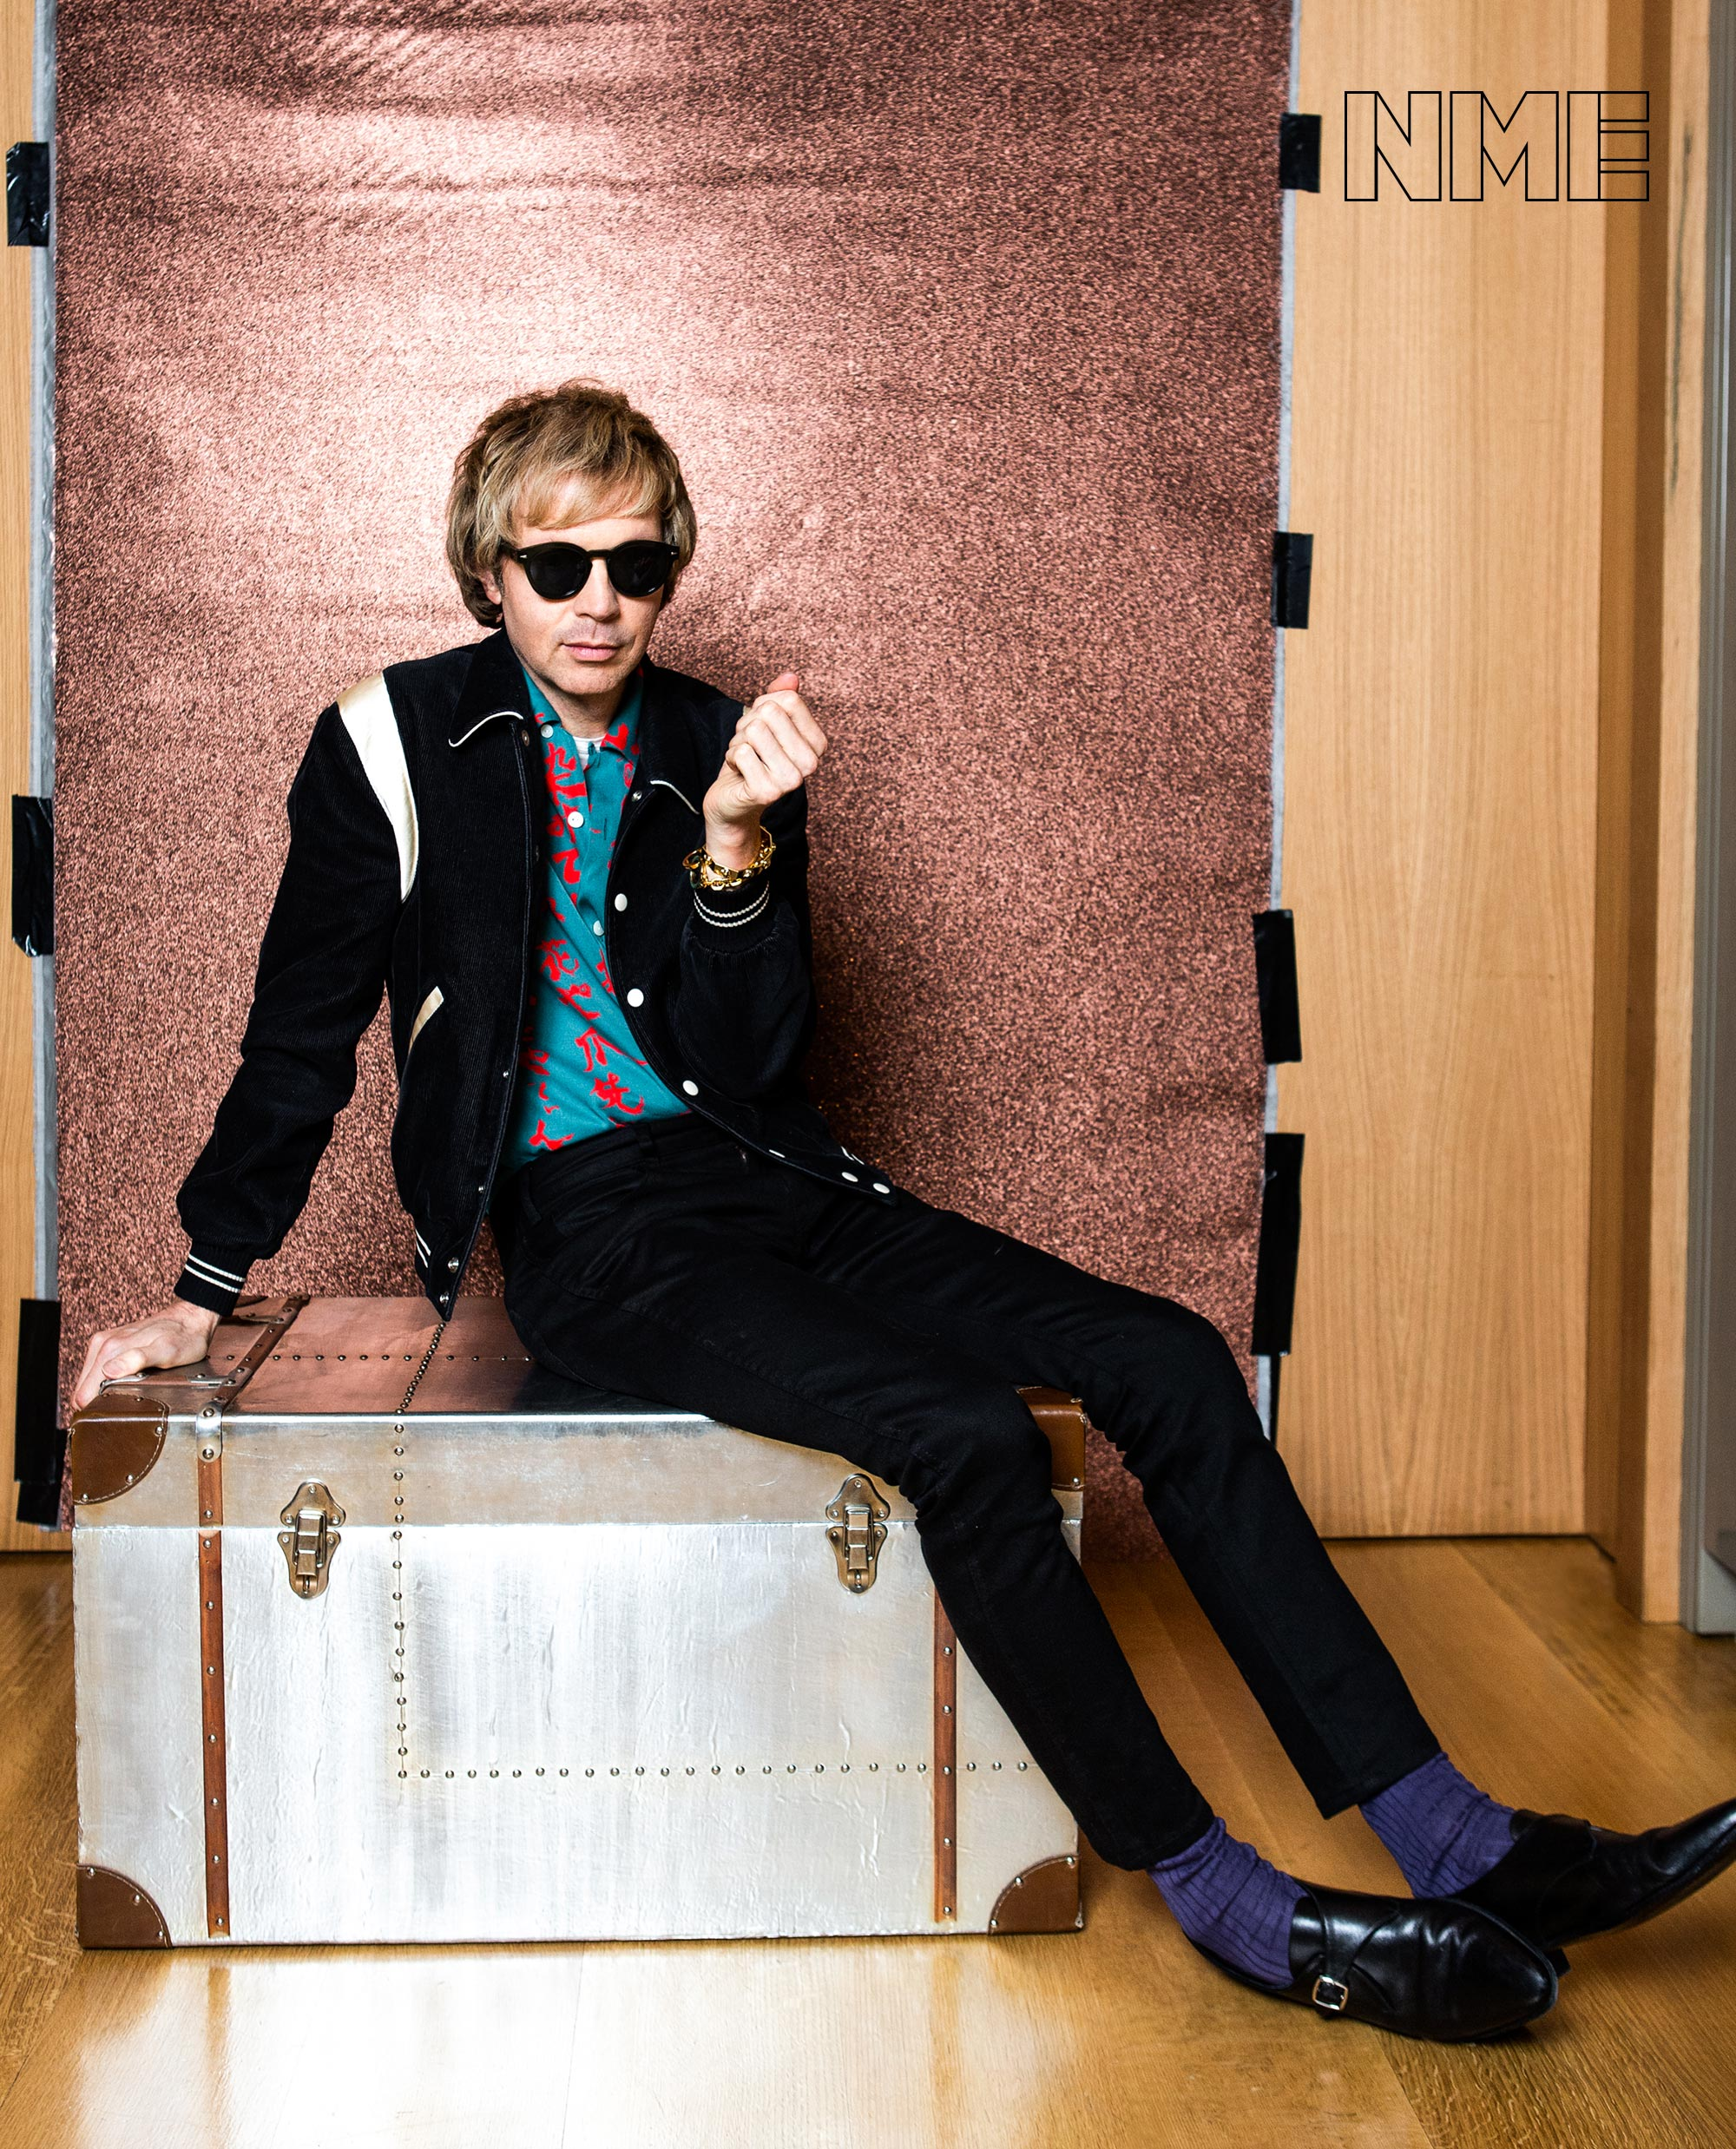 beck nme big read